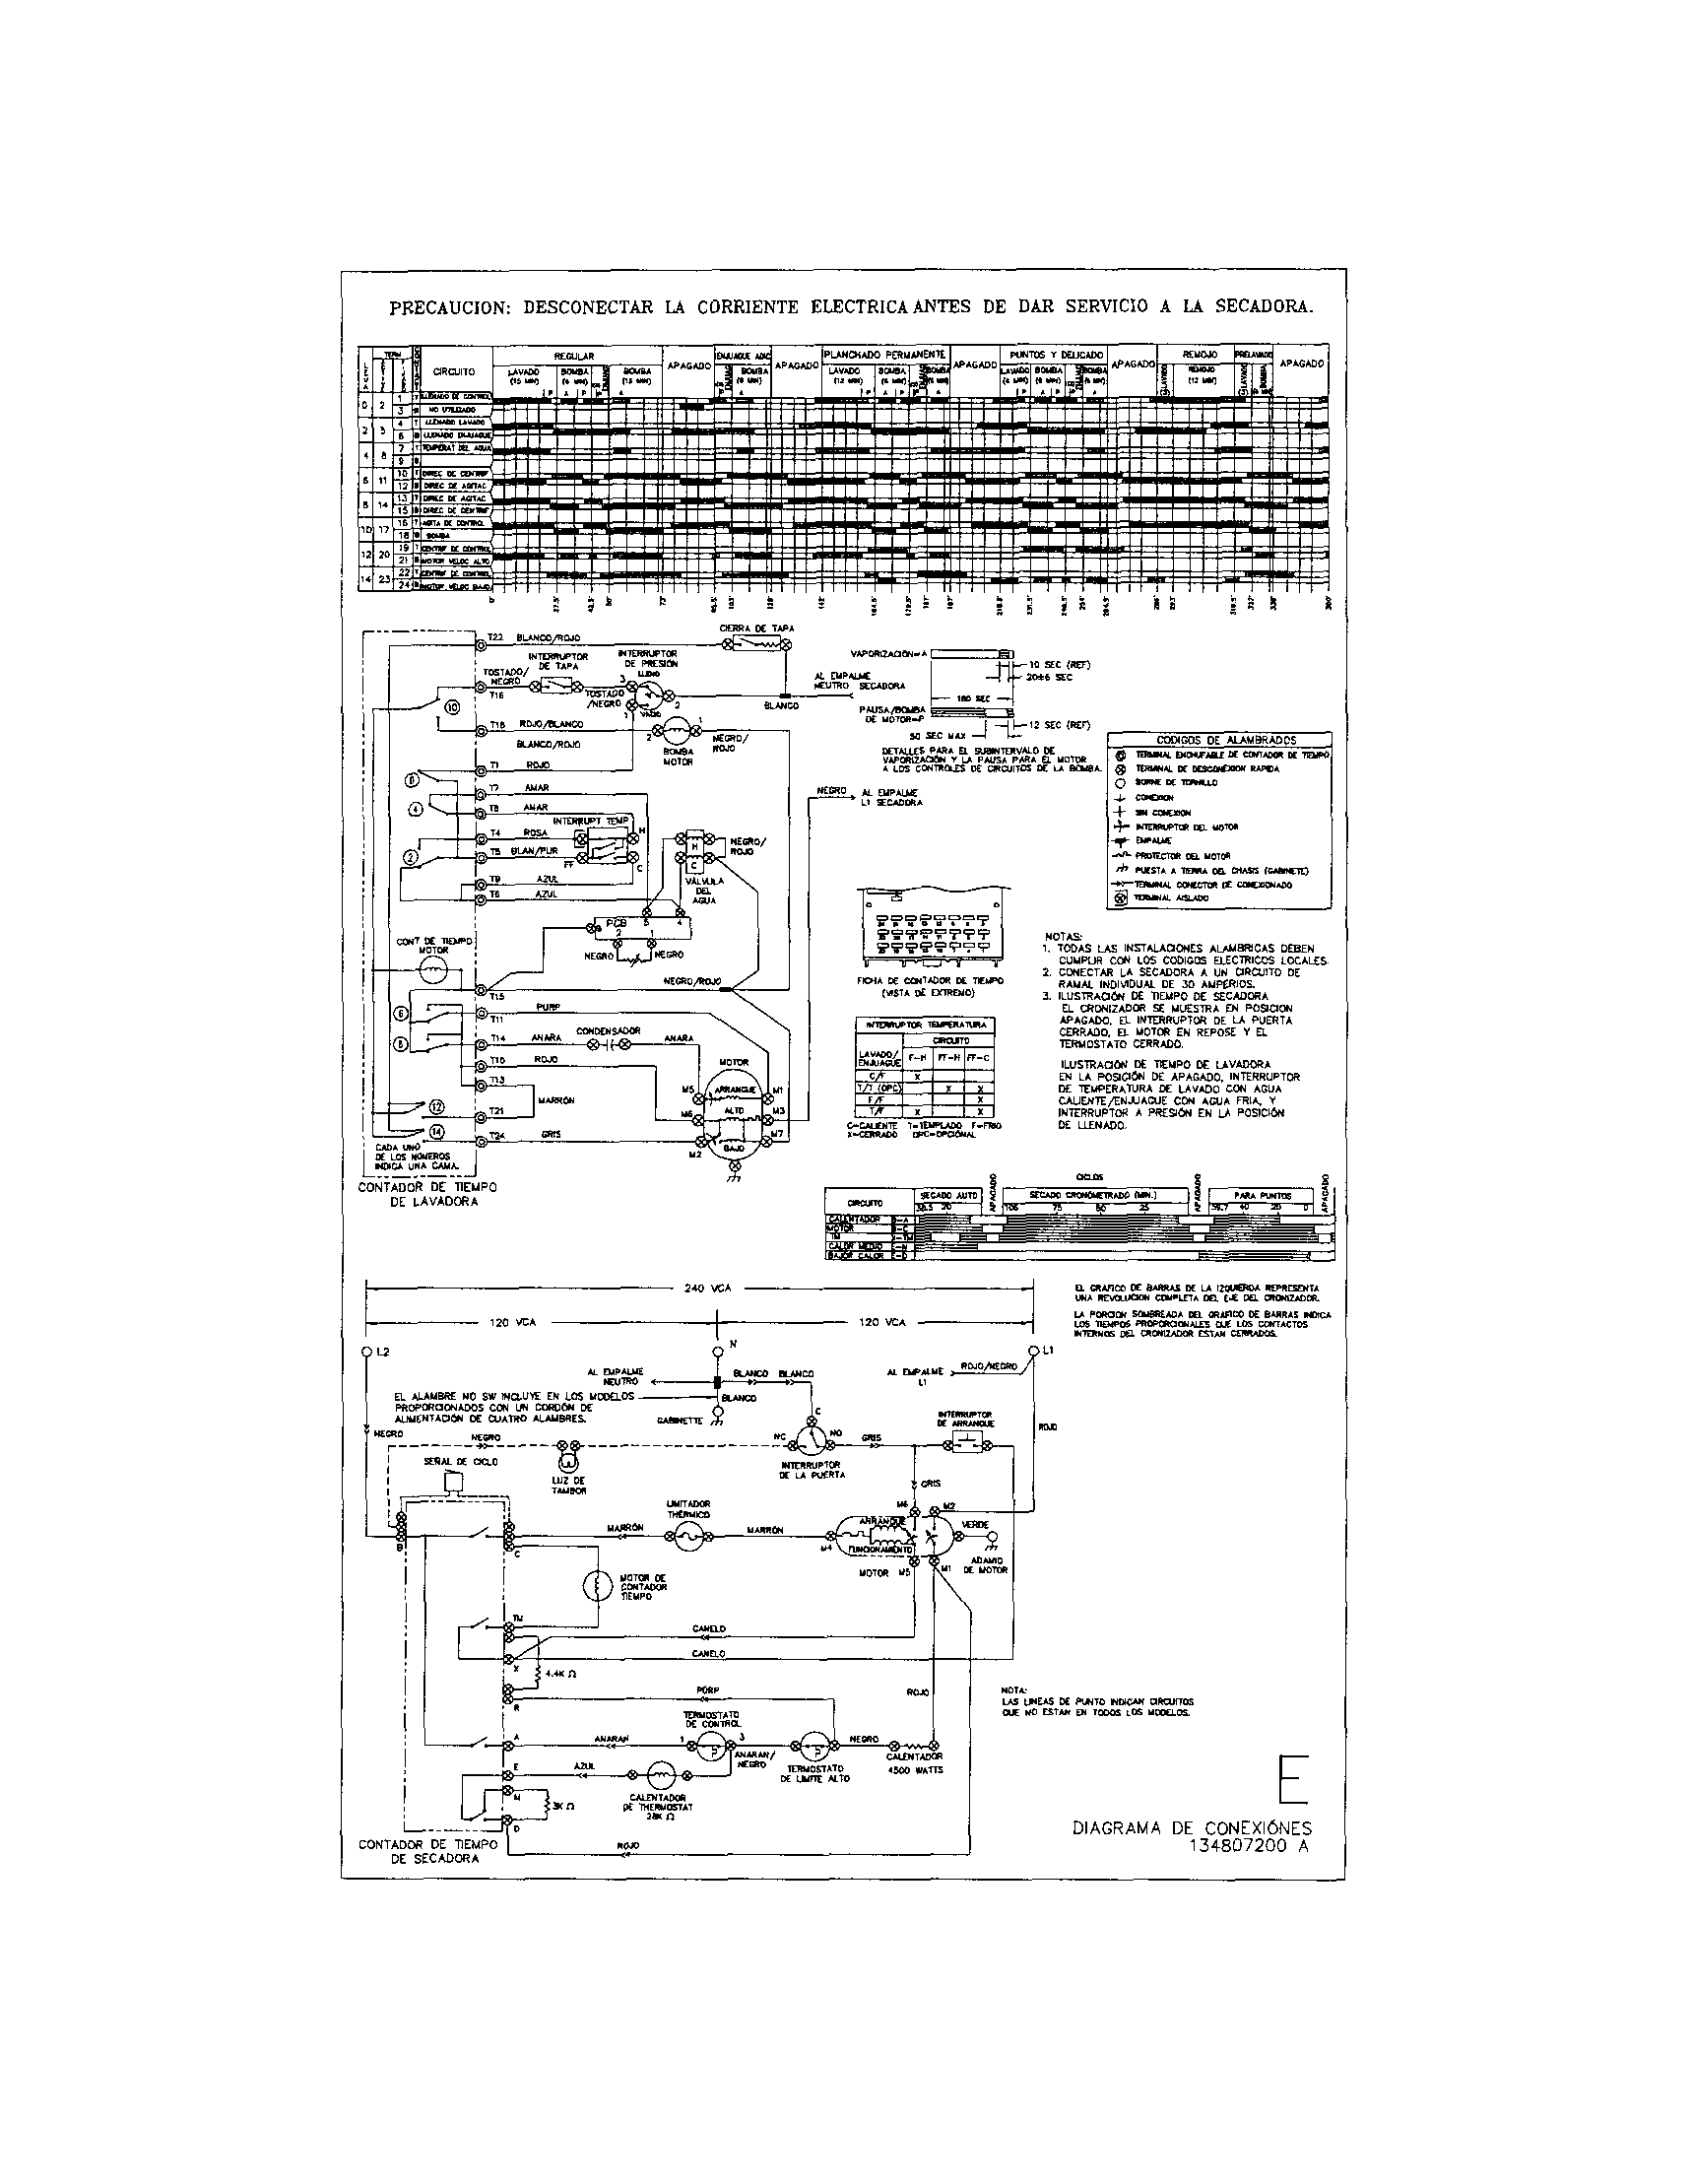 kenmore washer wiring diagram janitrol hpt18 60 thermostat laundry center diagrams get free image